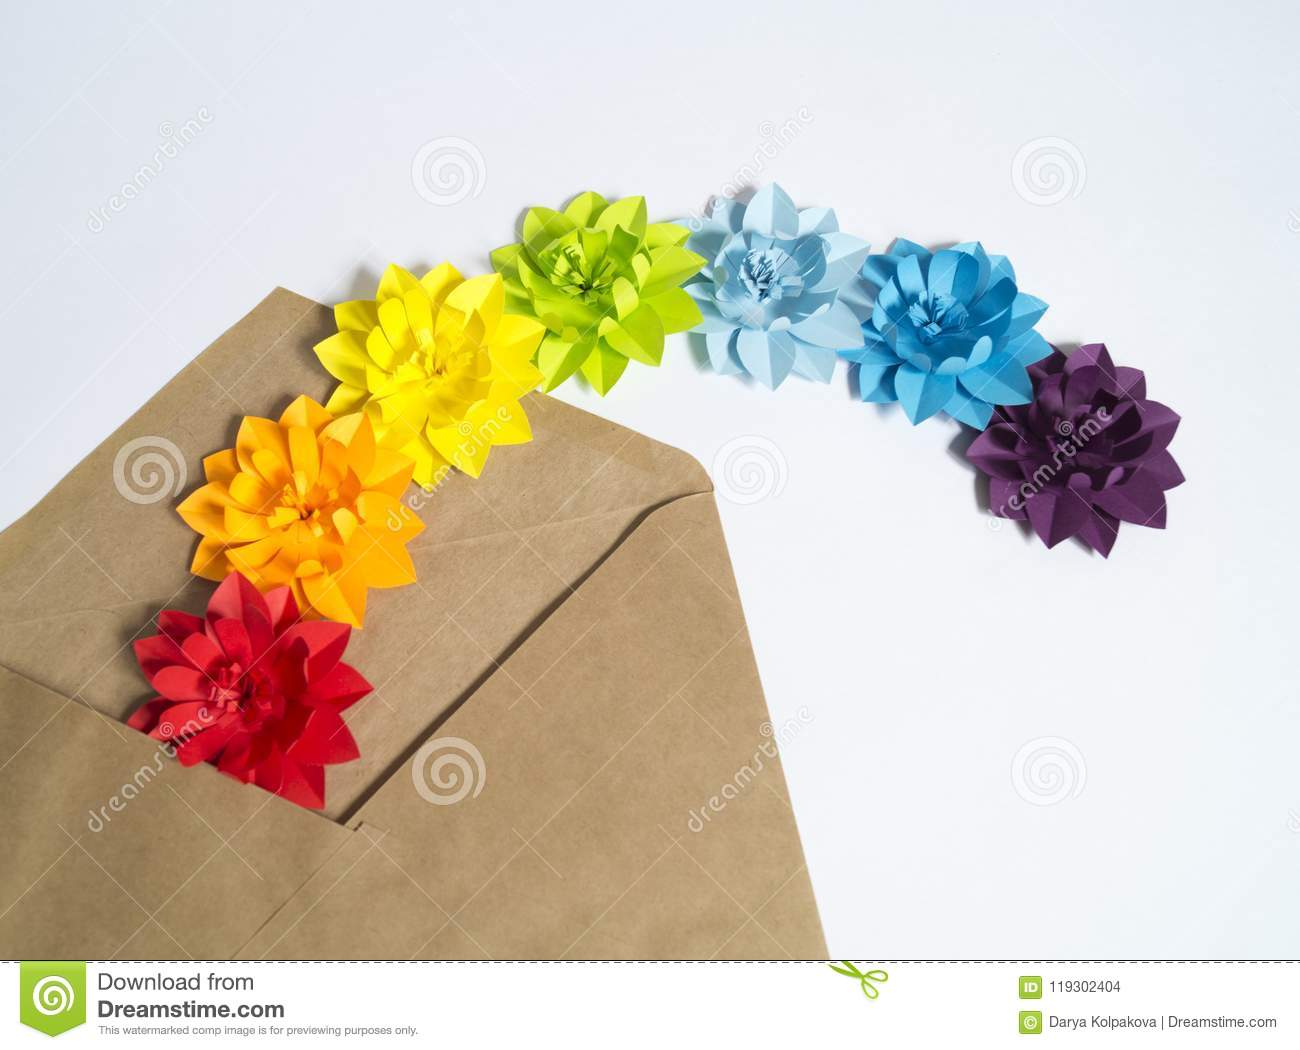 Paper craft flower rainbow decoration concept flat lay stock photo paper craft flower rainbow decoration concept flat lay colourful handmade paper flowers on white background the mothers day celebration march 8 mightylinksfo